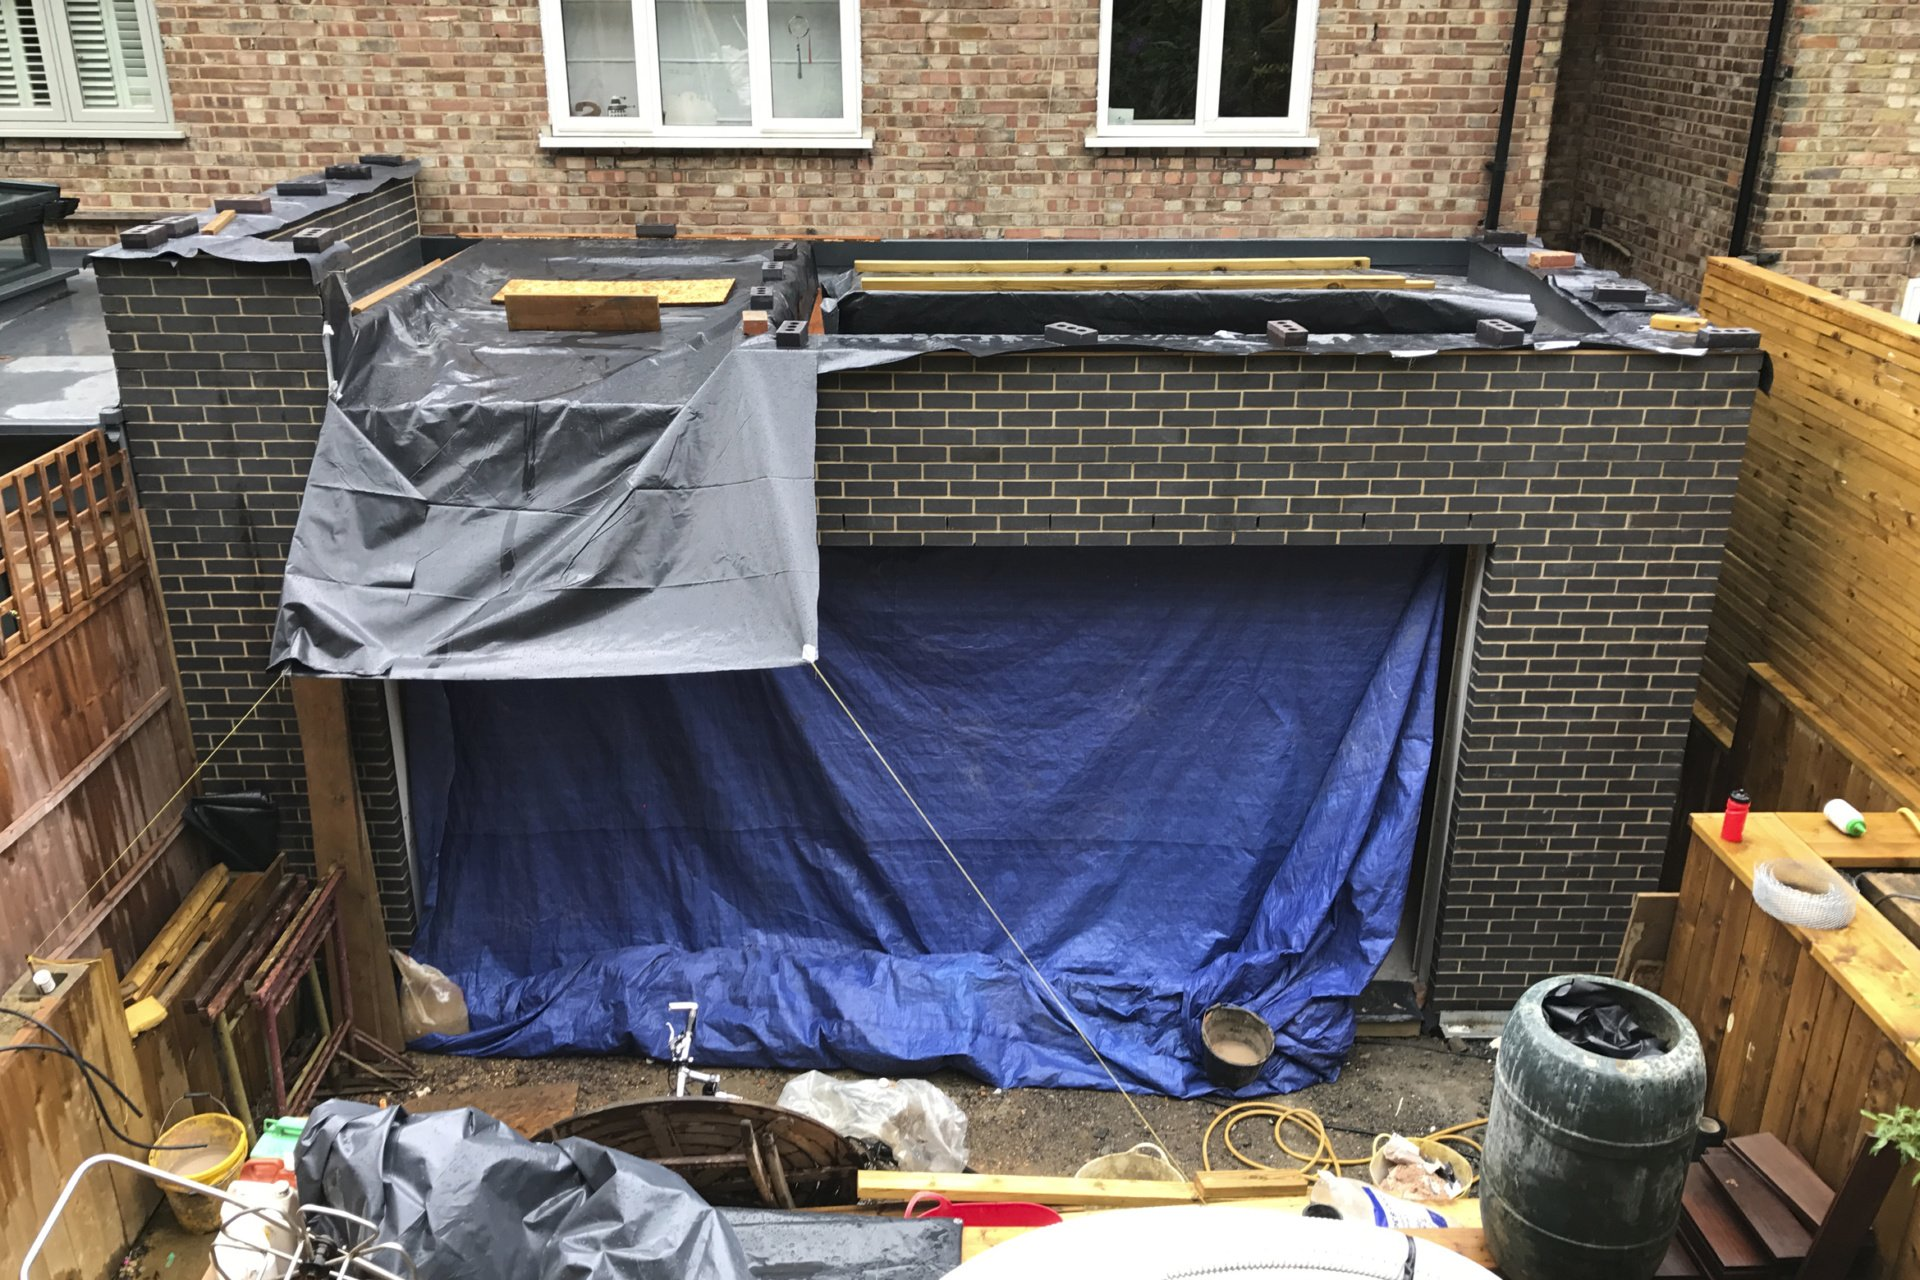 Architect designed rear house extension Highgate Haringey N6 – Site photo 1 Highgate, Haringey N6 | Rear house extension